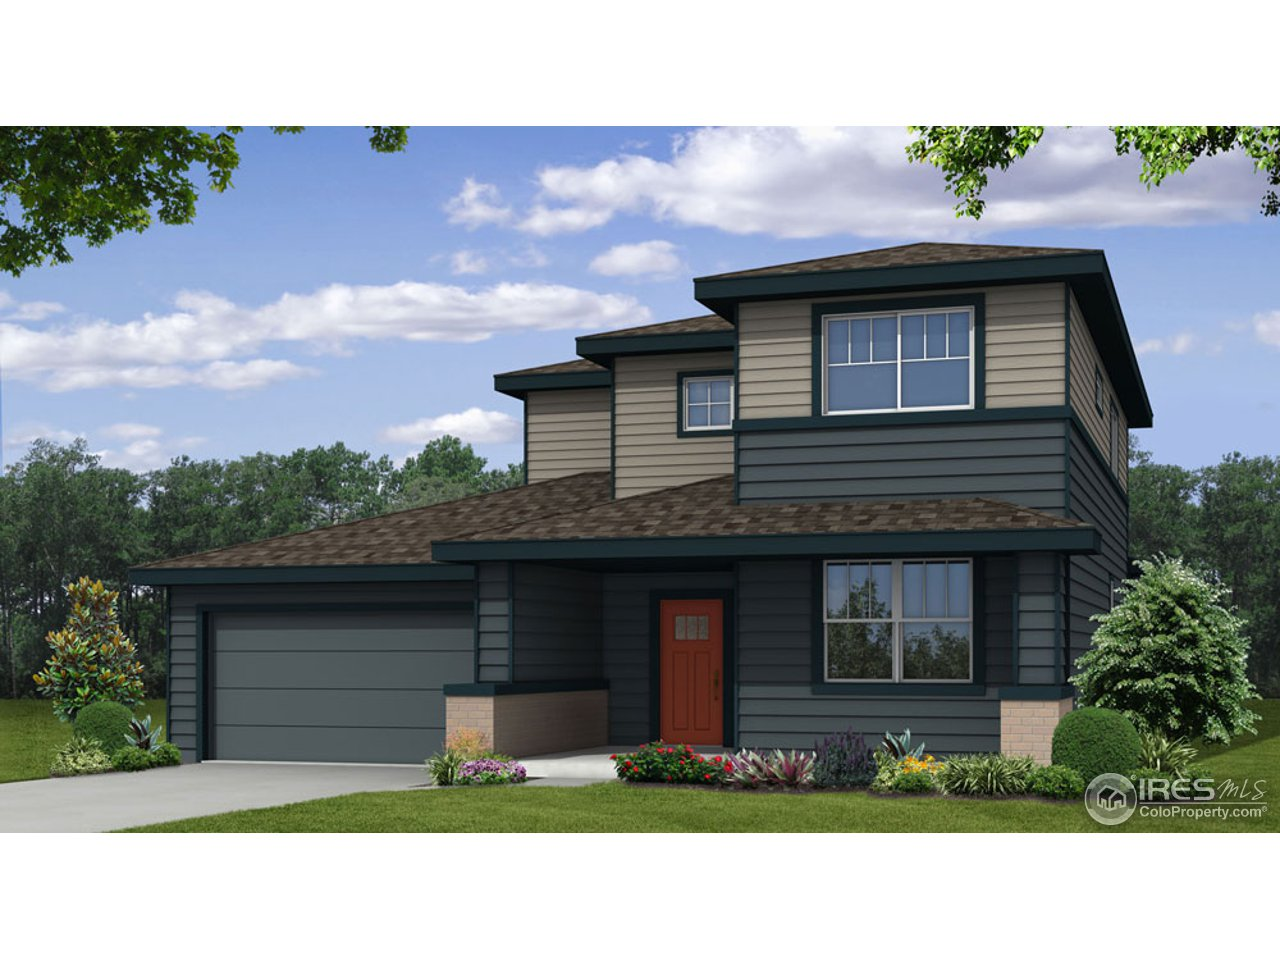 2198 Lager St, Fort Collins CO 80524